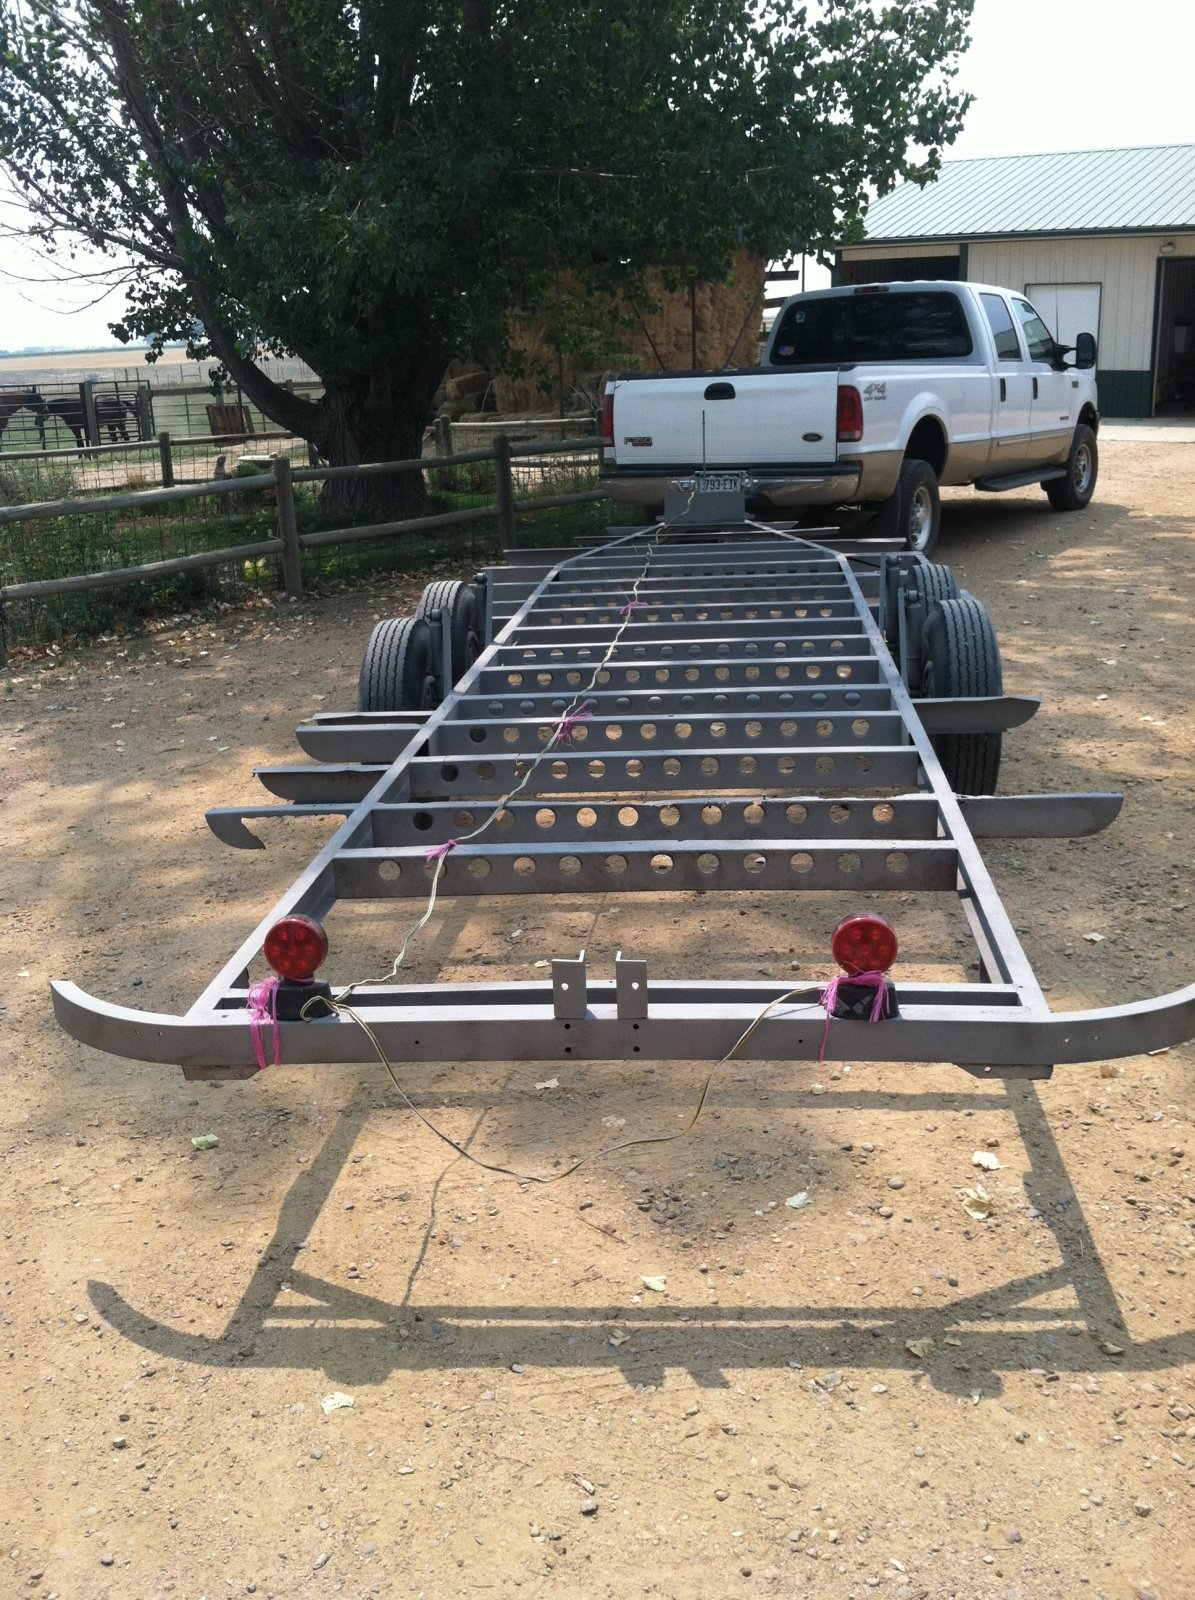 Click image for larger version  Name:stripped trailer 001.jpg Views:103 Size:498.8 KB ID:170093